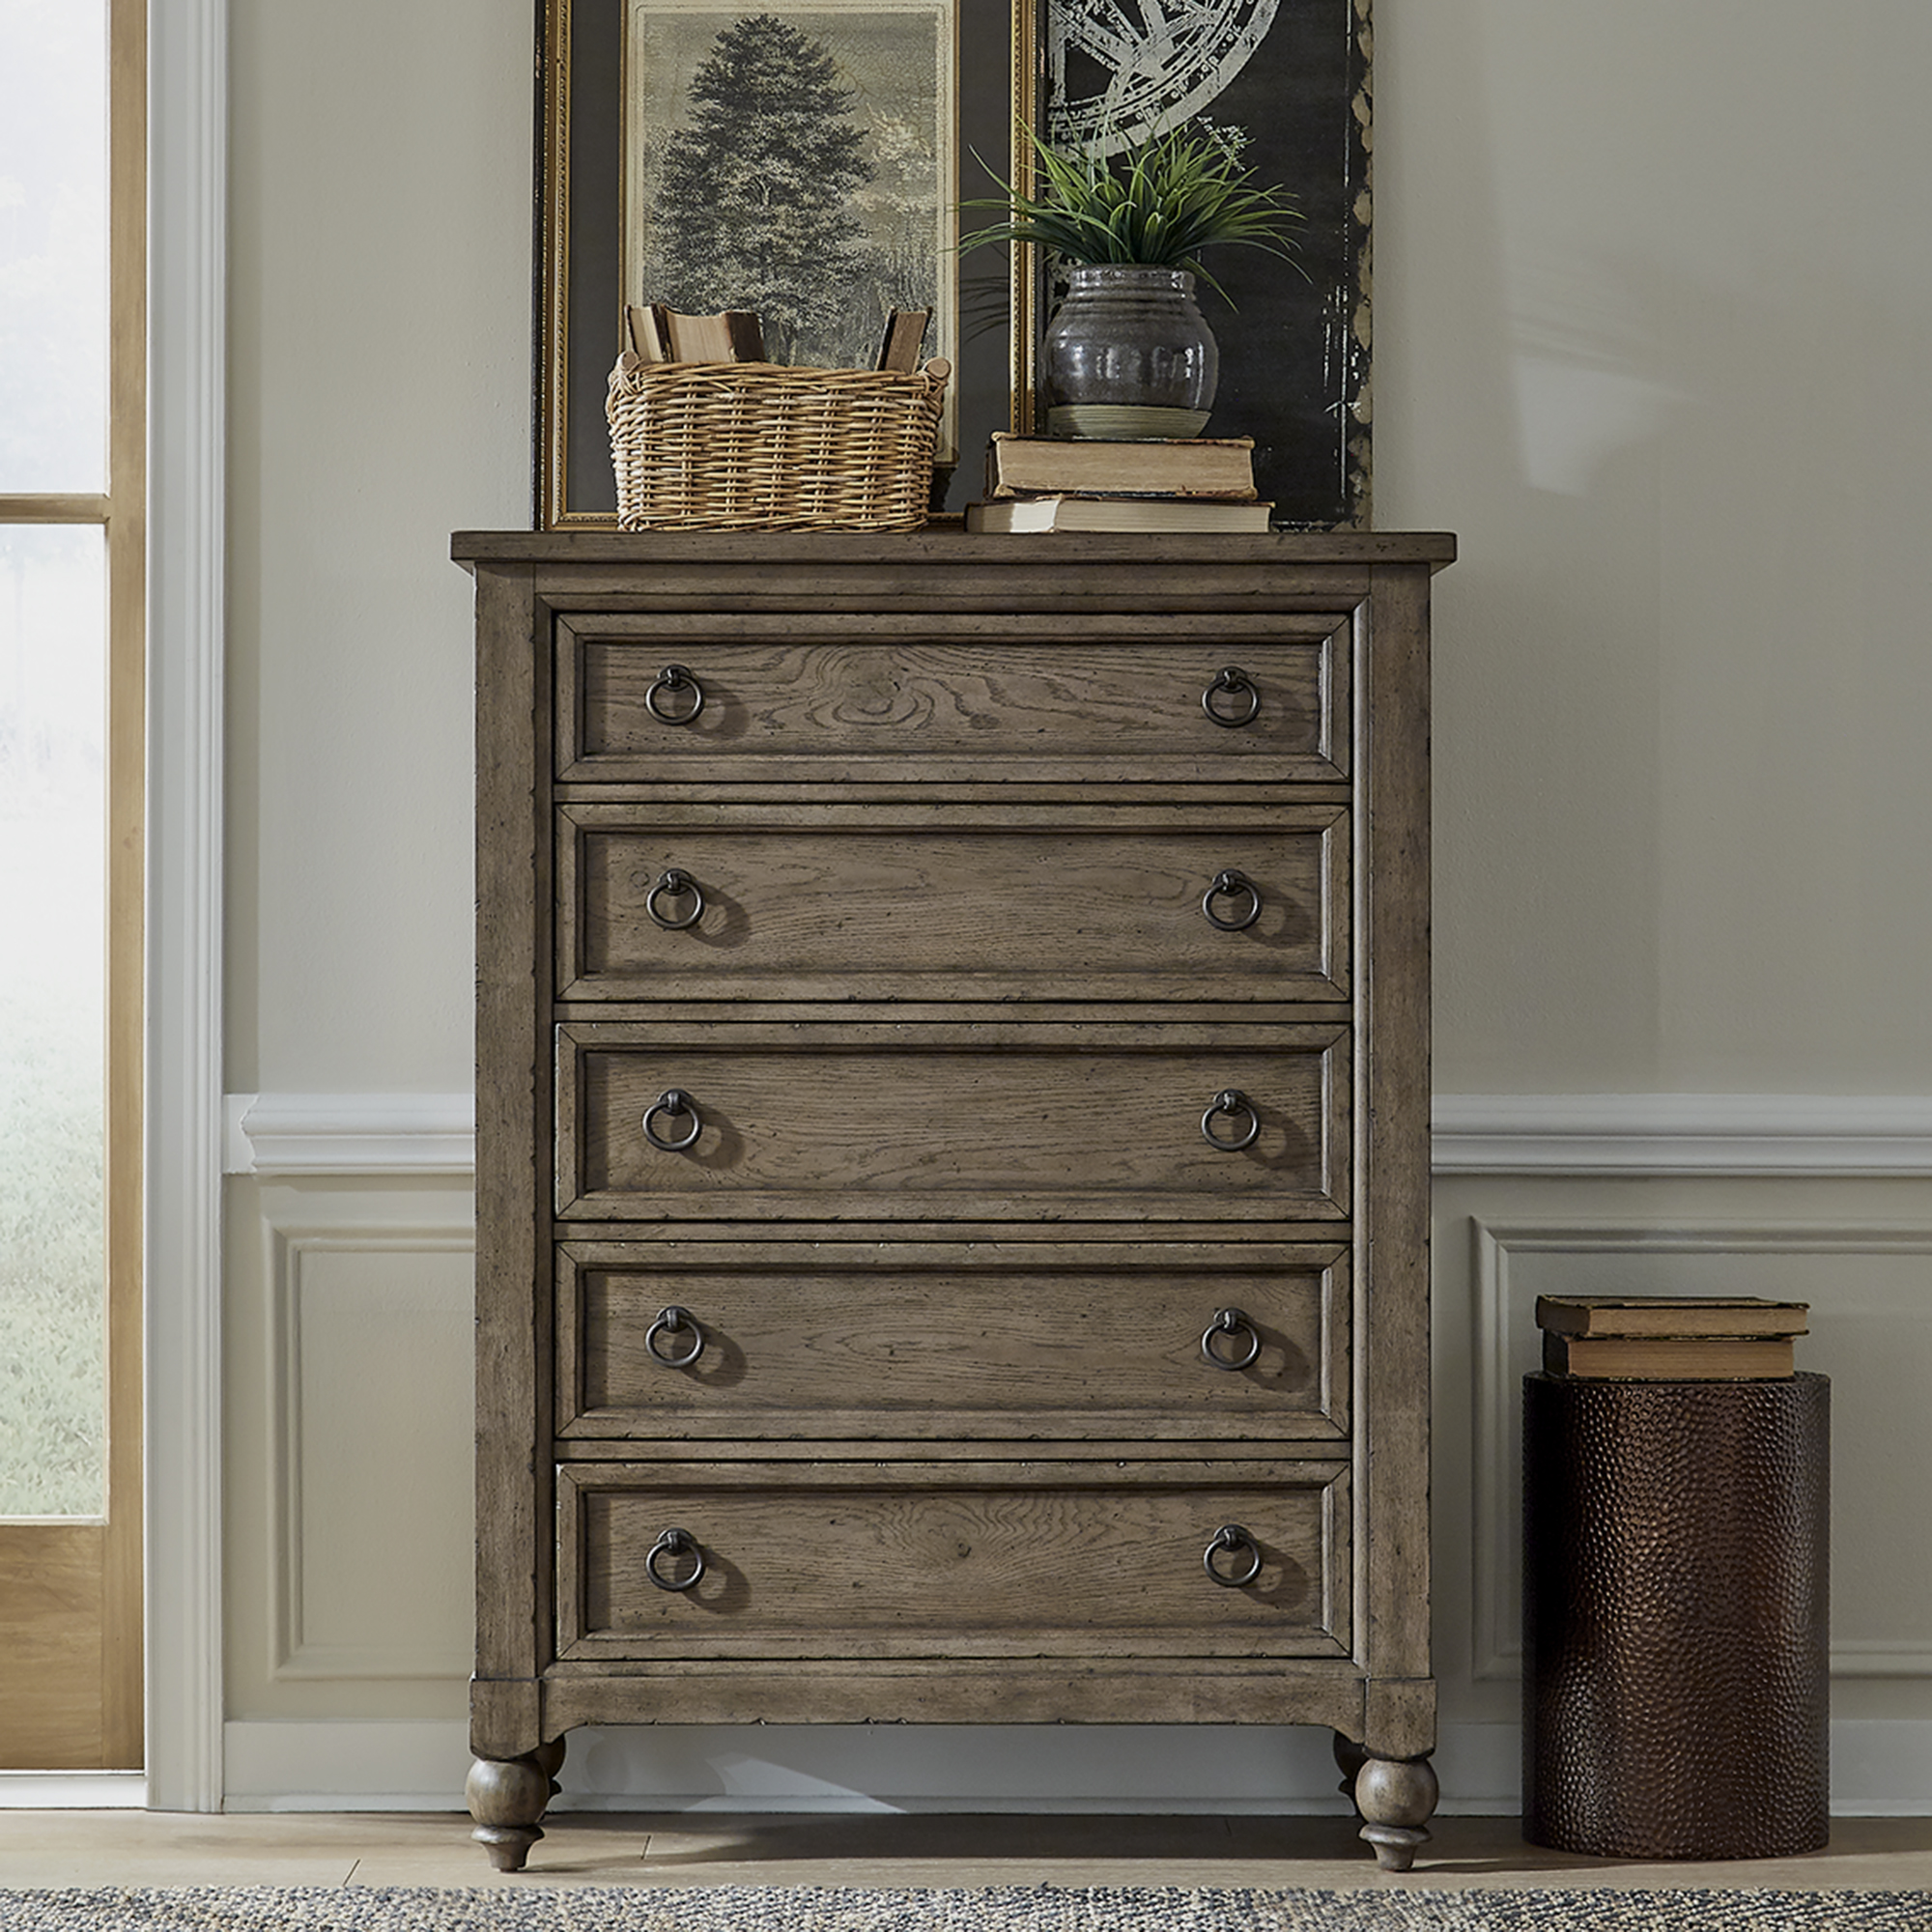 Americana Farmhouse Bedroom Chest by Liberty Furniture at Standard Furniture